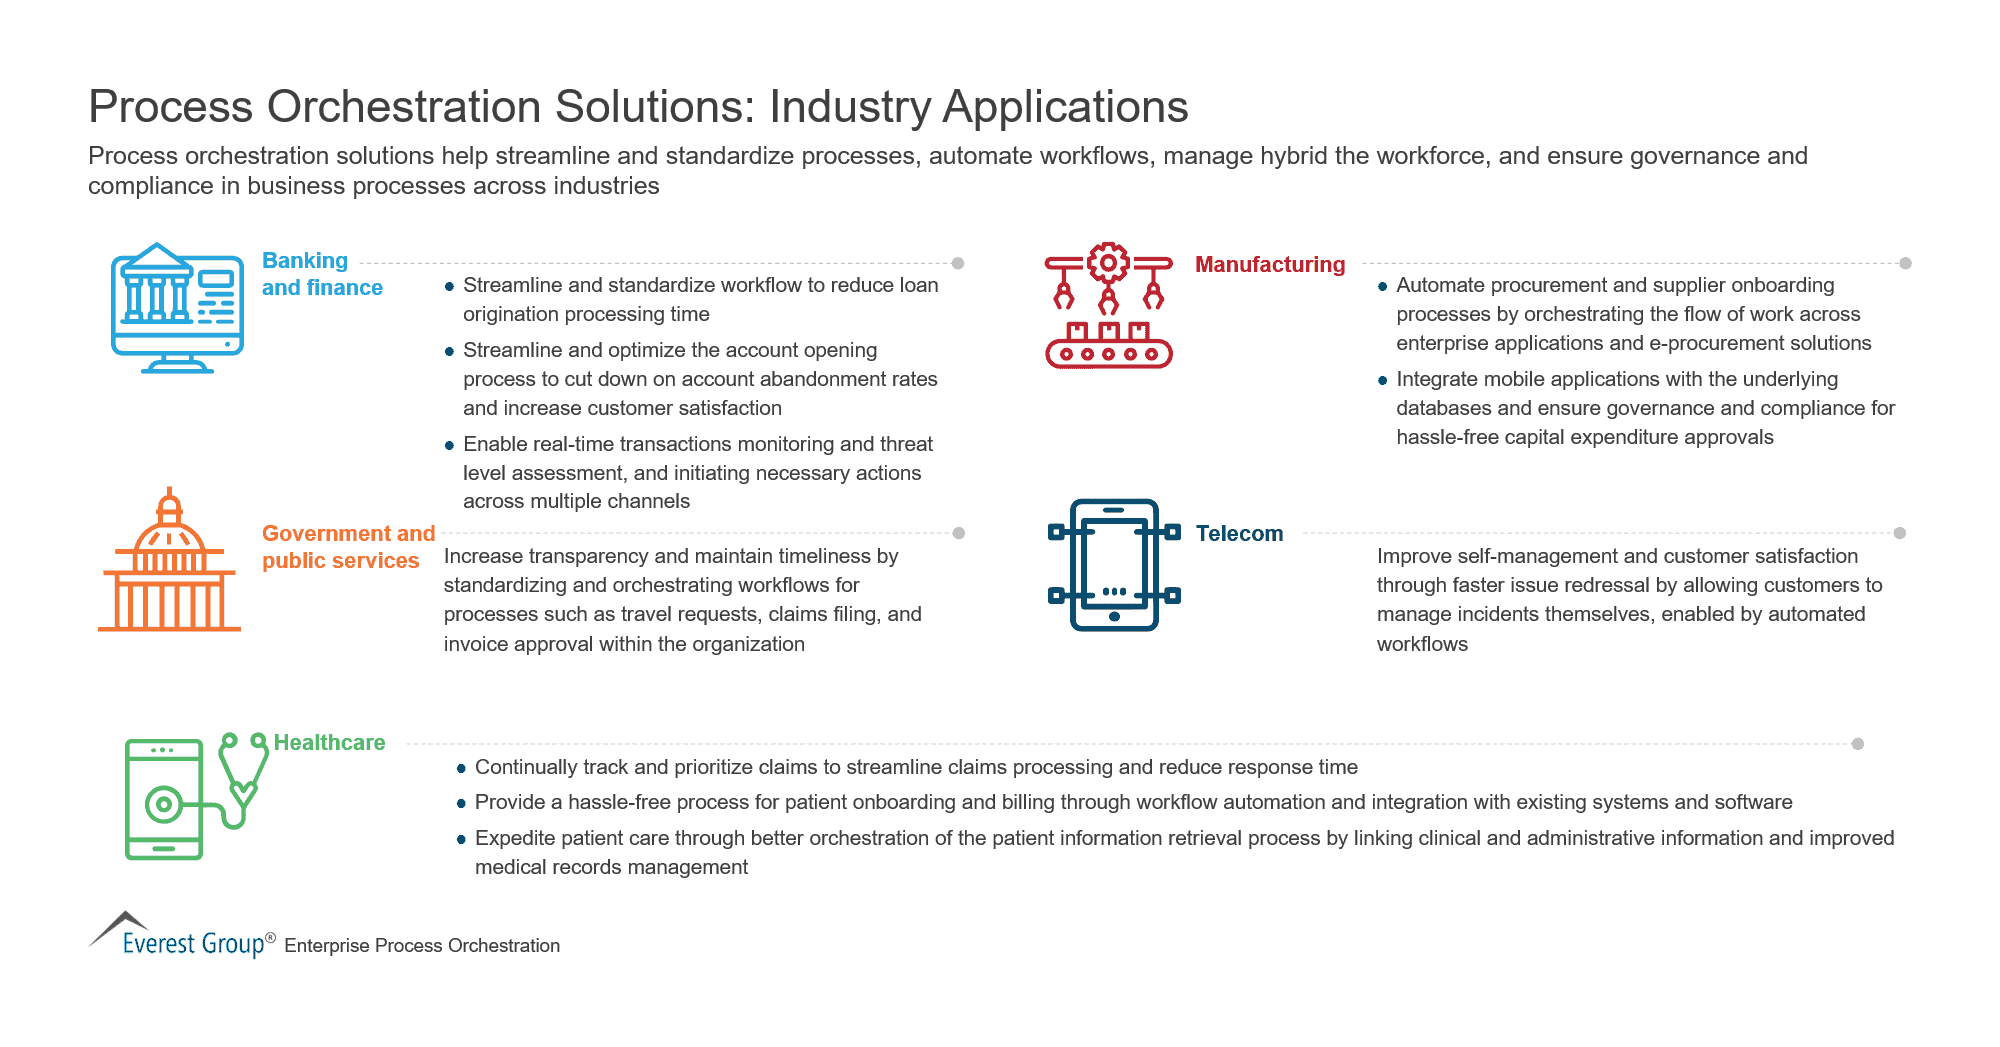 Process Orchestration Solutions - Industry Applications